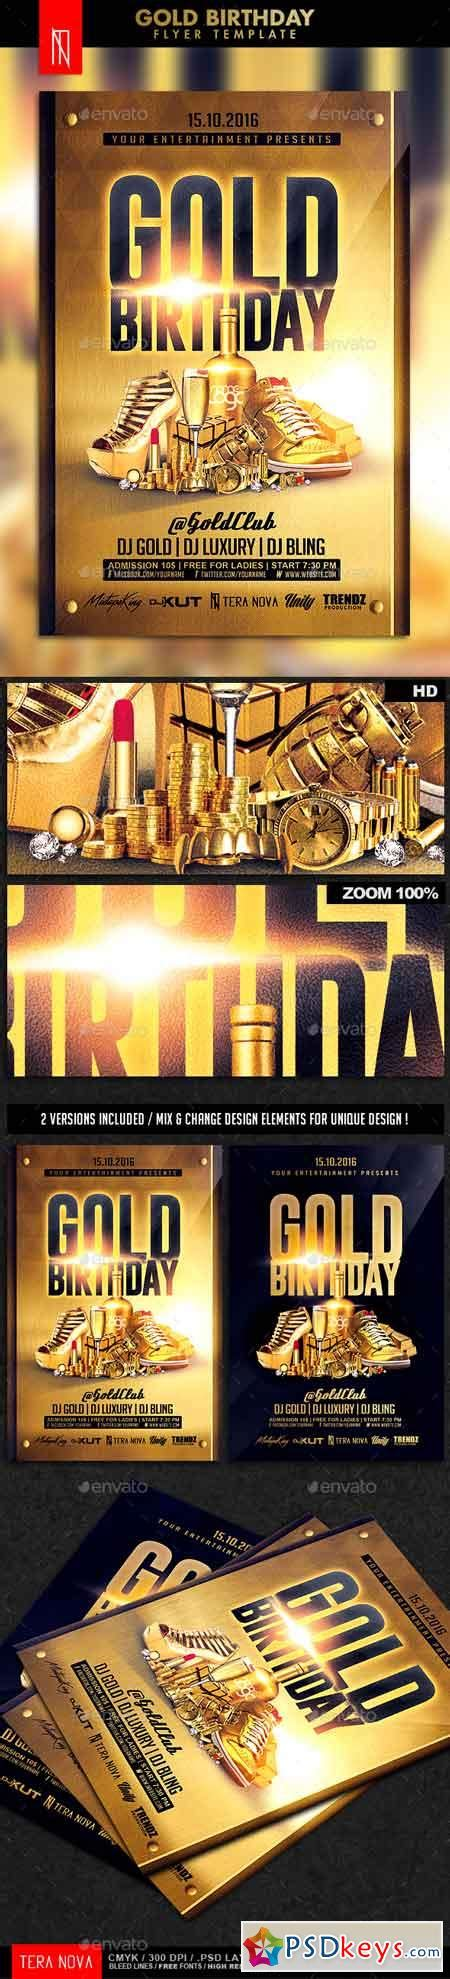 Gold Birthday Bling Bling Flyer Template 187 Free Download Photoshop Vector Stock Image Via Gold Flyer Template